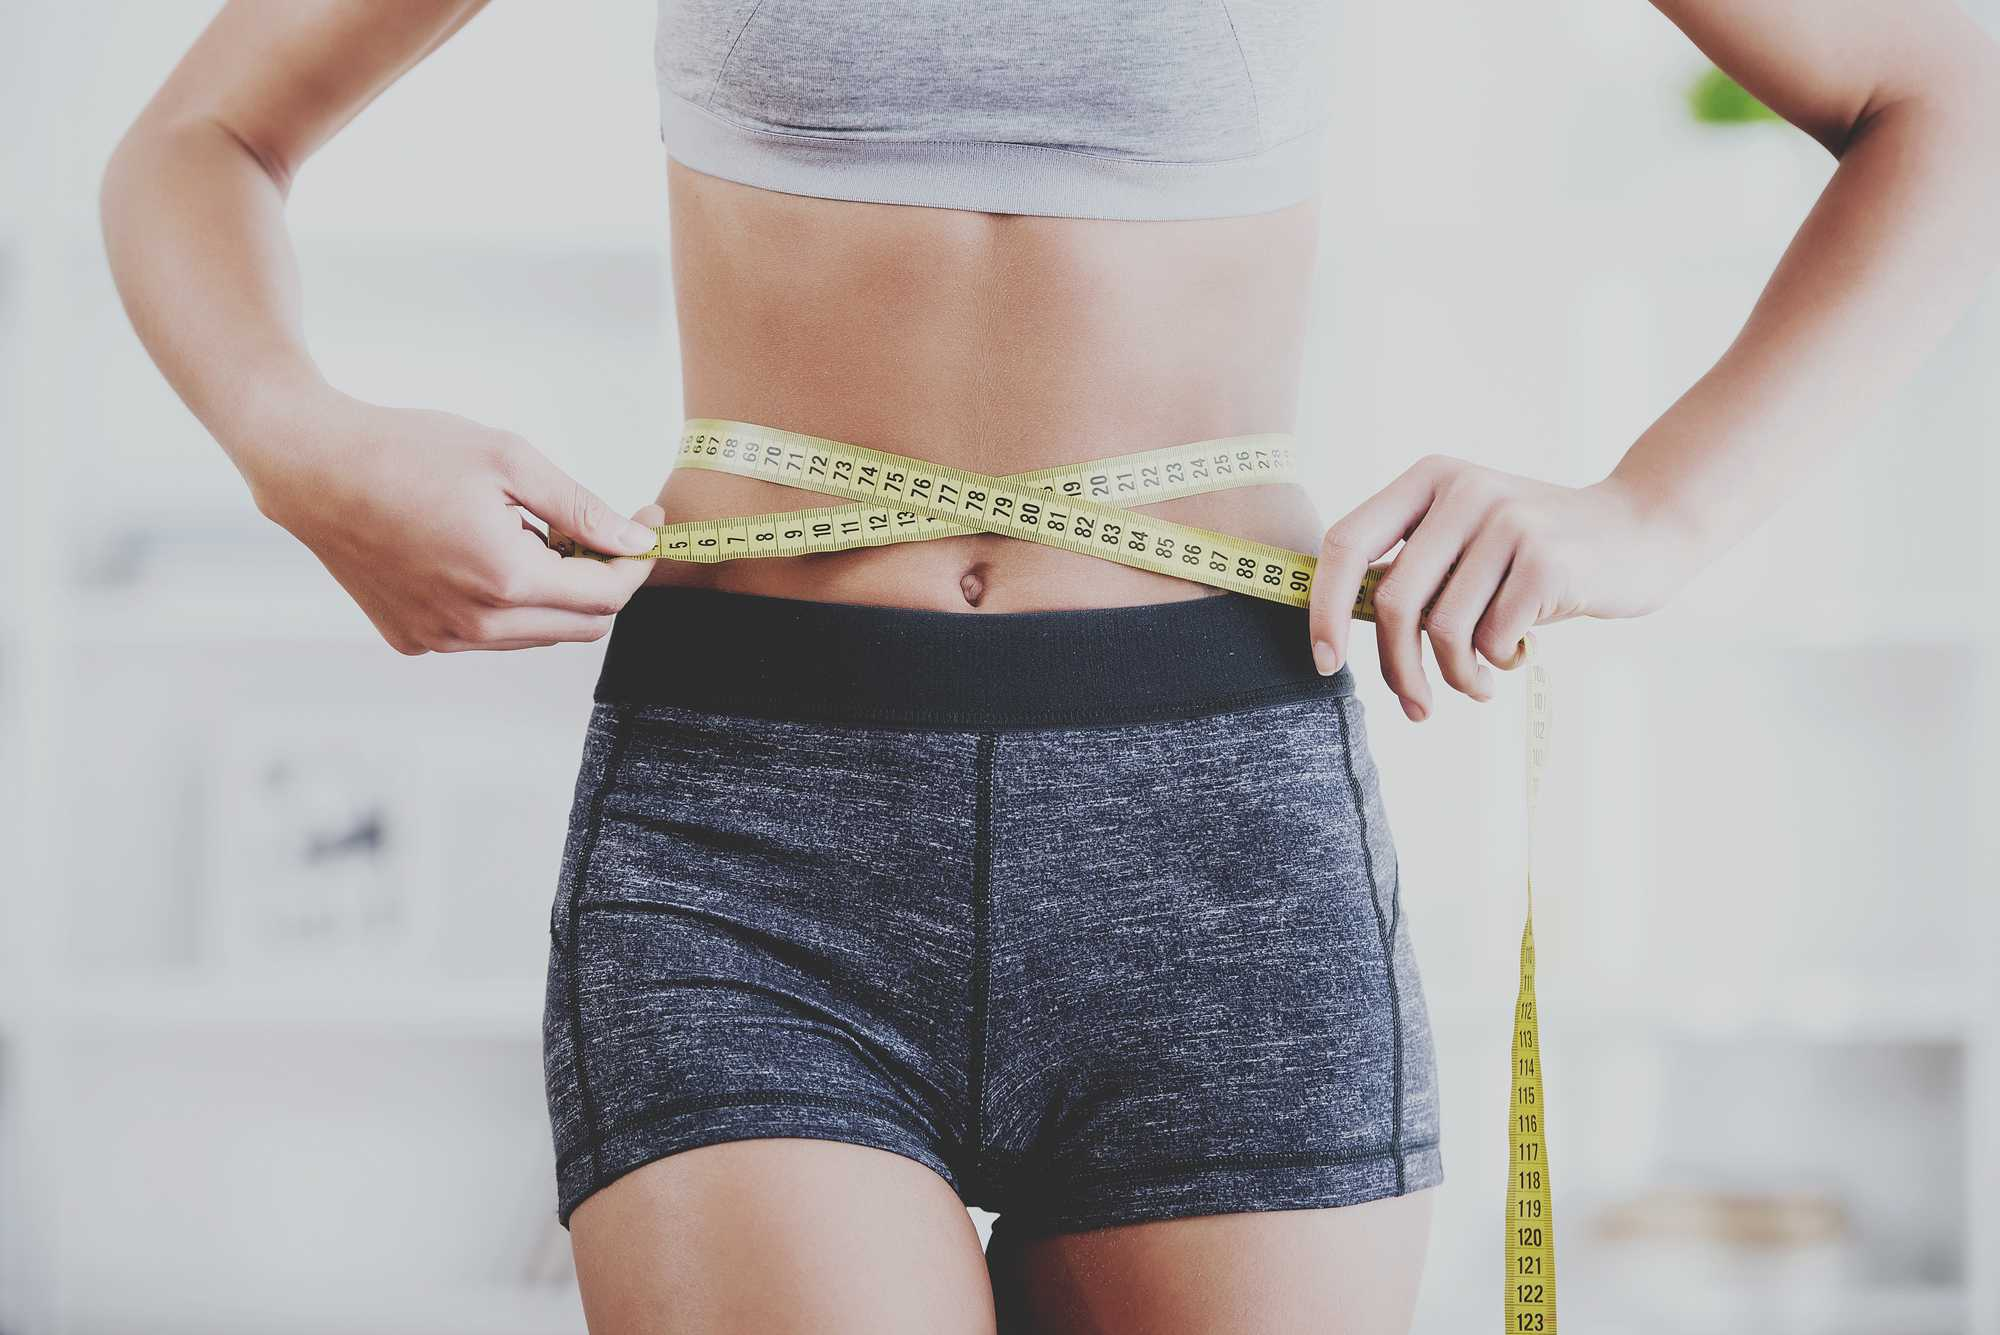 Helpful Notes About Female Bloating And Weight Loss